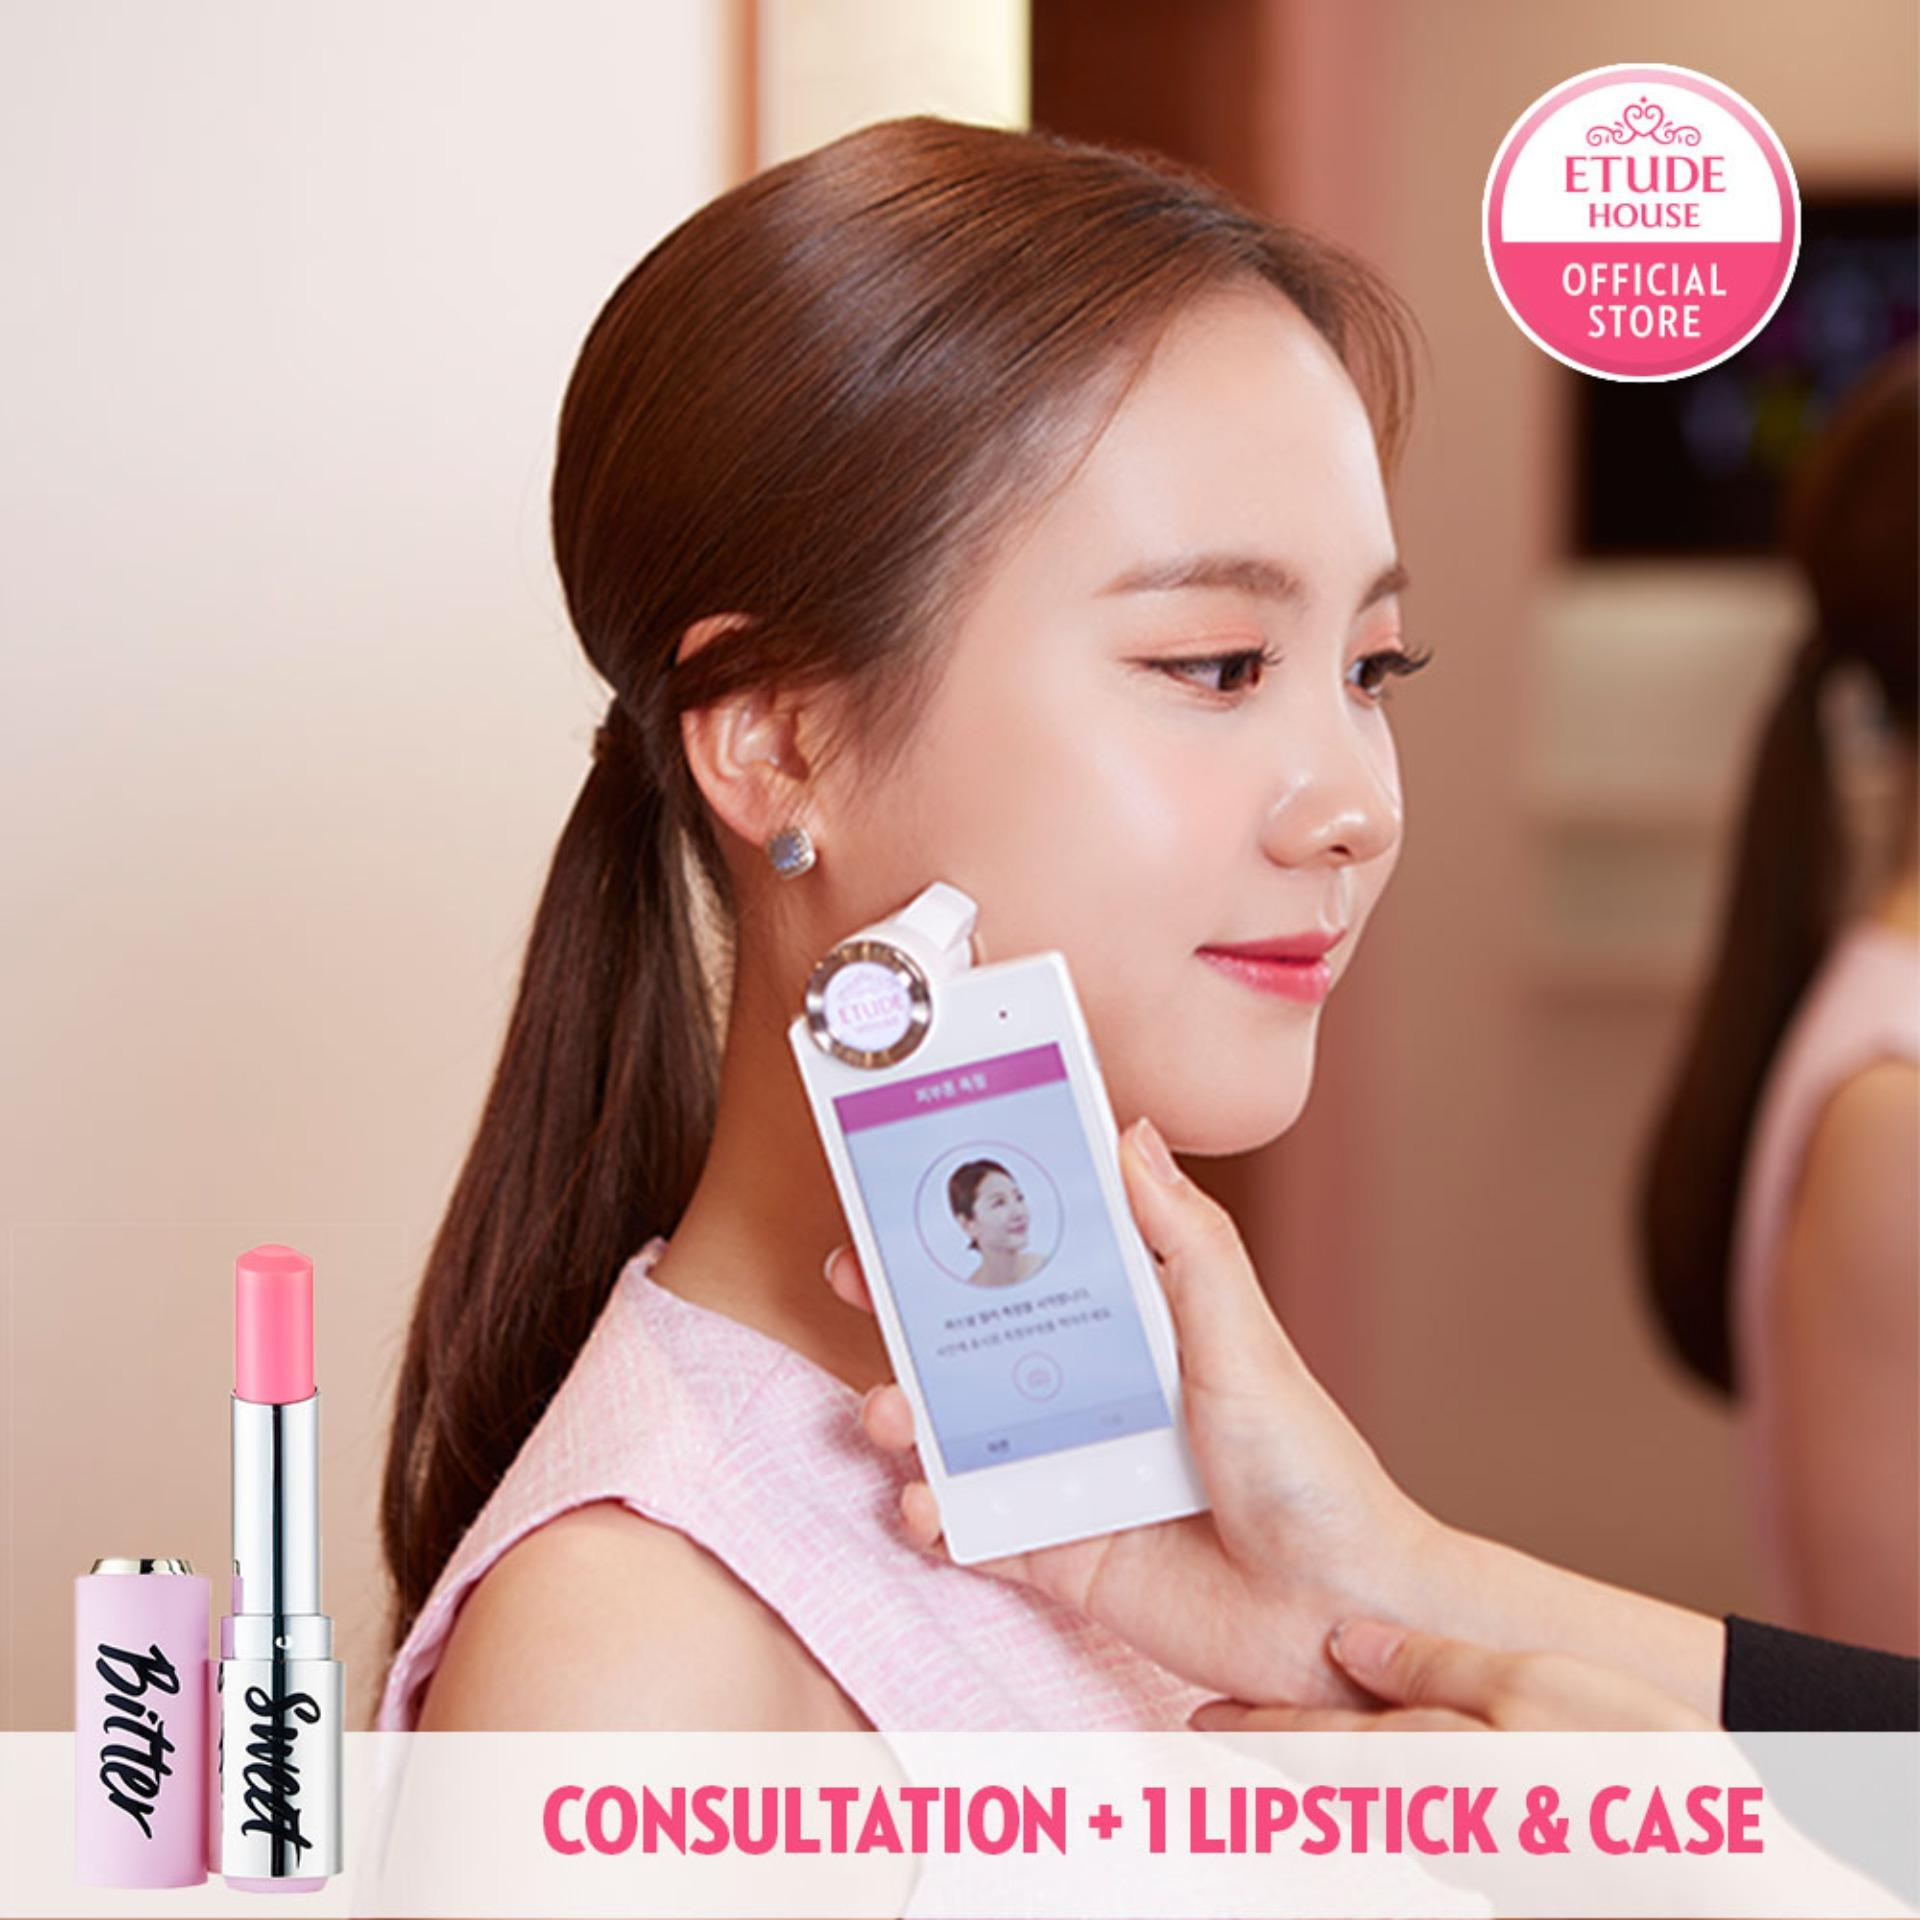 Etude House Color Factory My Personal Lipstick Service (1 Color) By Etudehouse (capitaland Merchant).